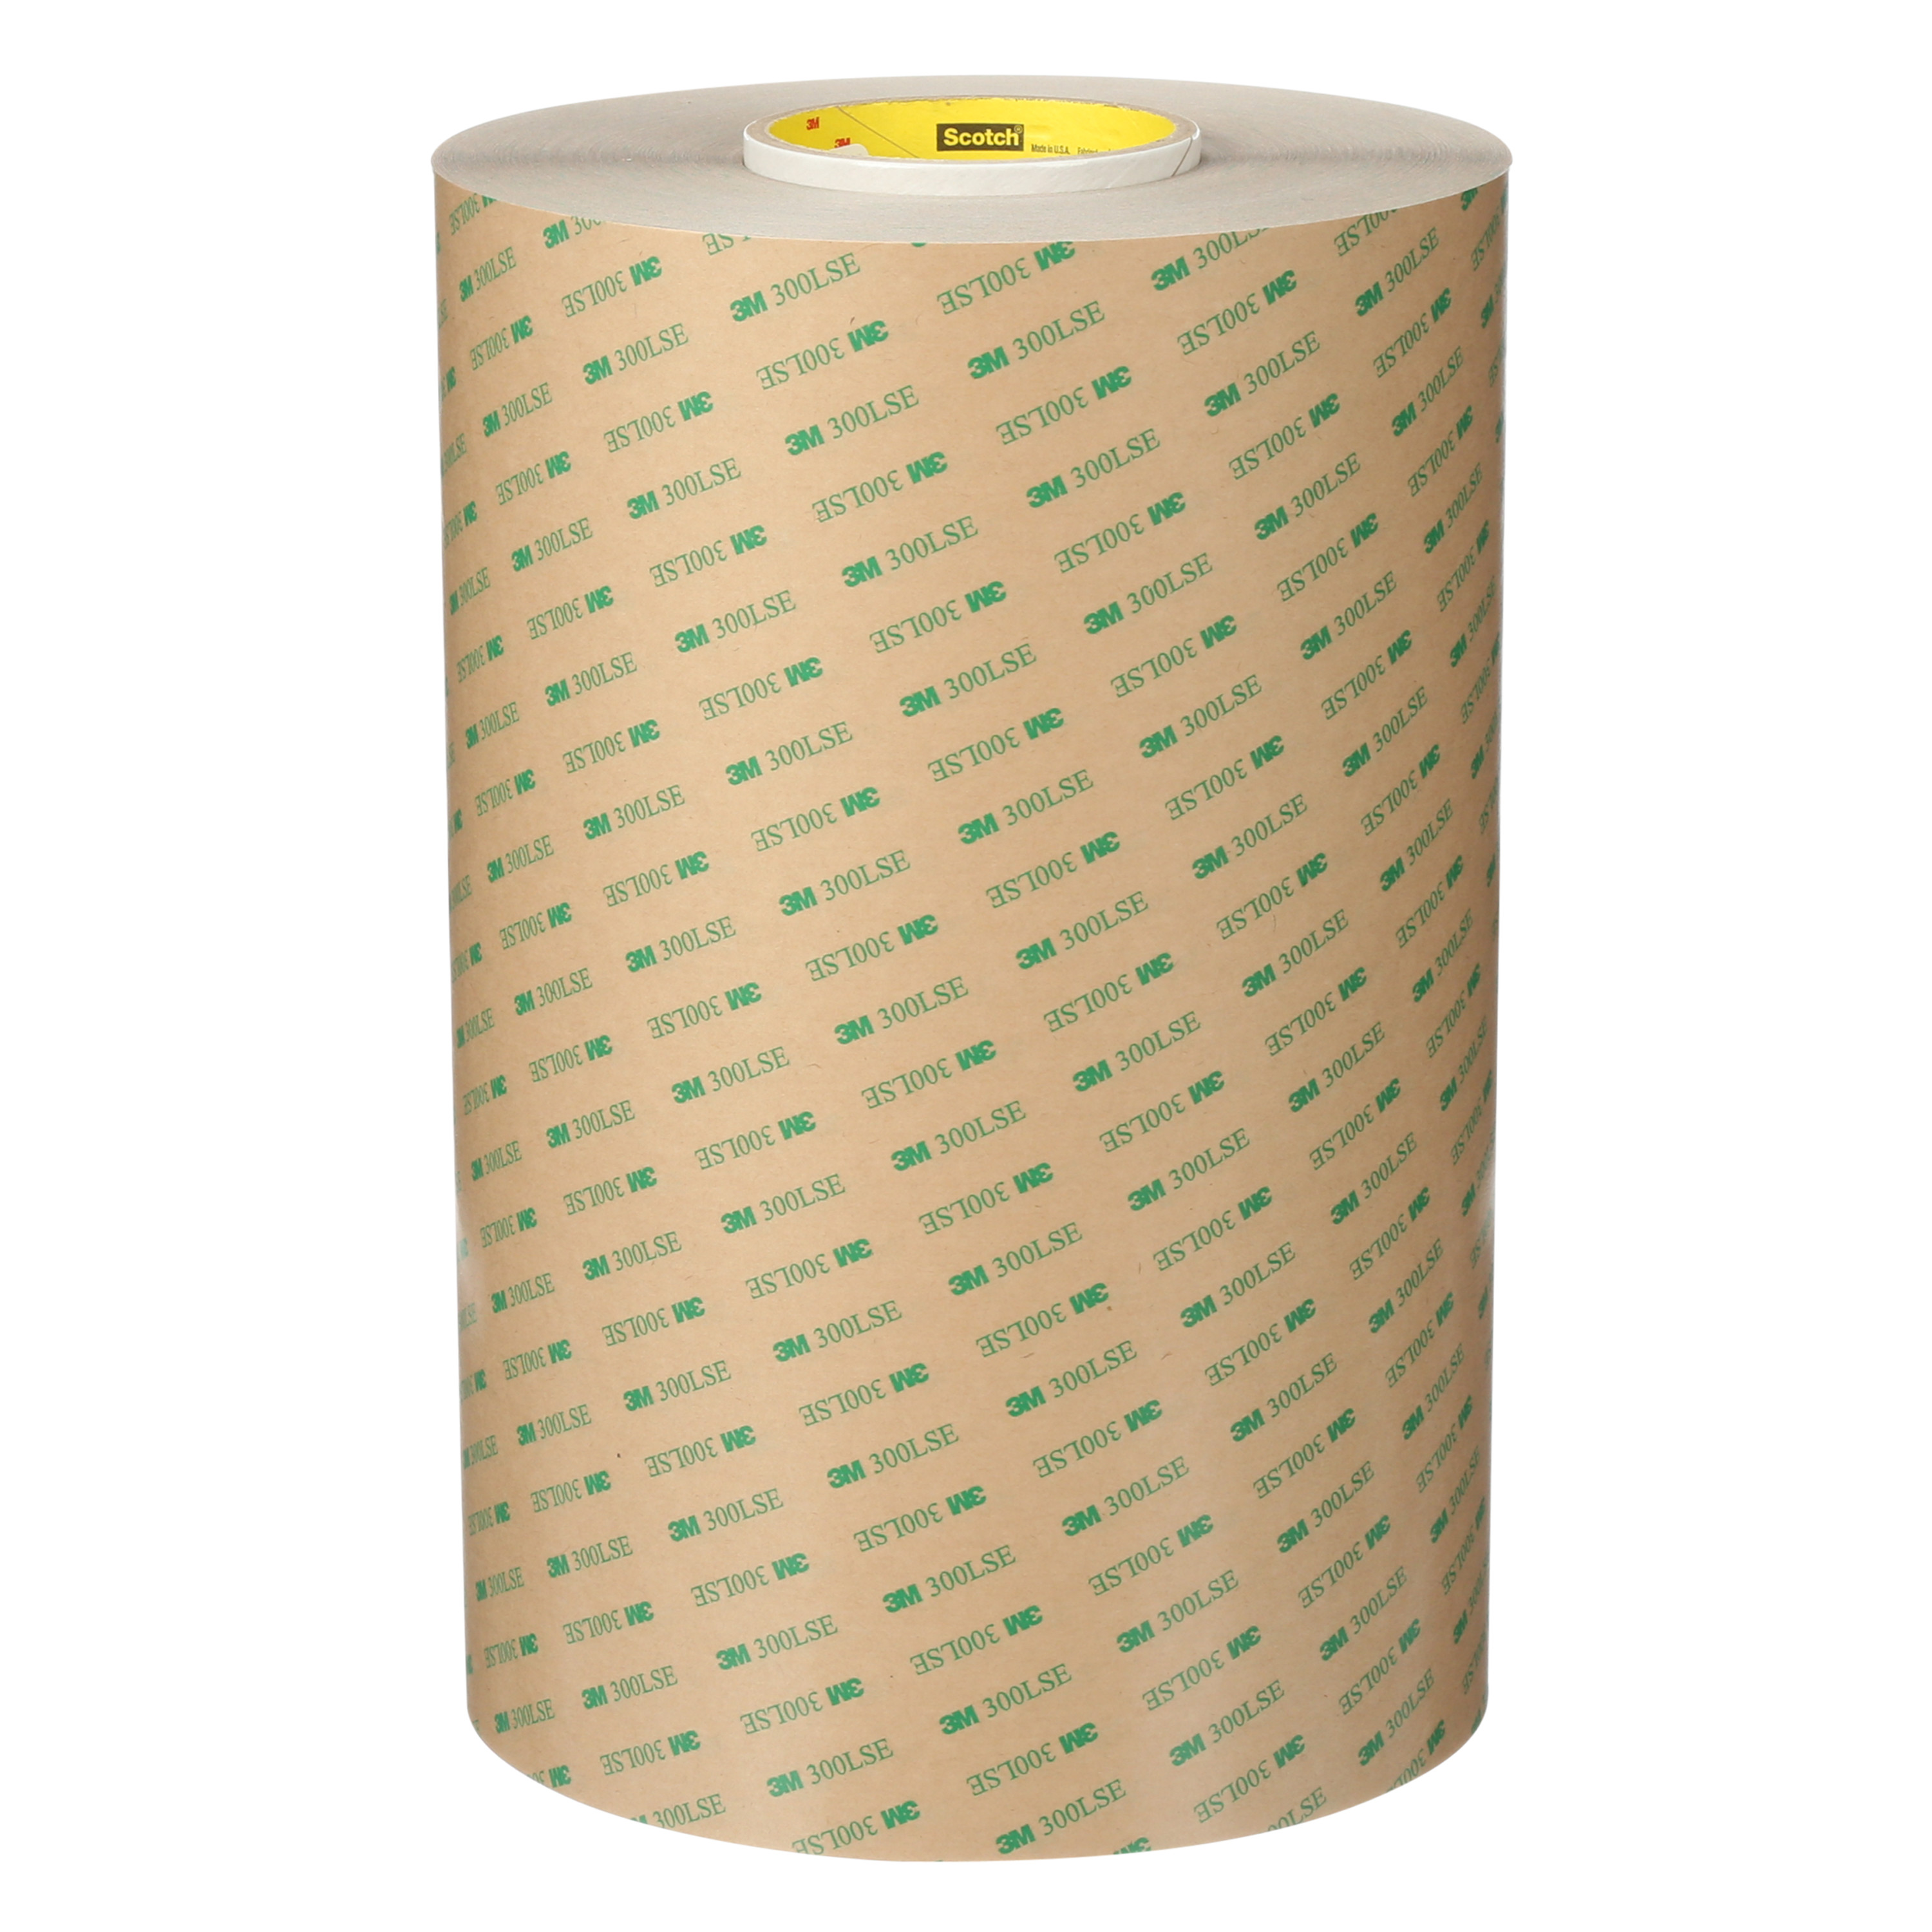 3M™ Adhesive Transfer Tape Double Linered 8132LE, Clear, 2 mil, Roll, Config